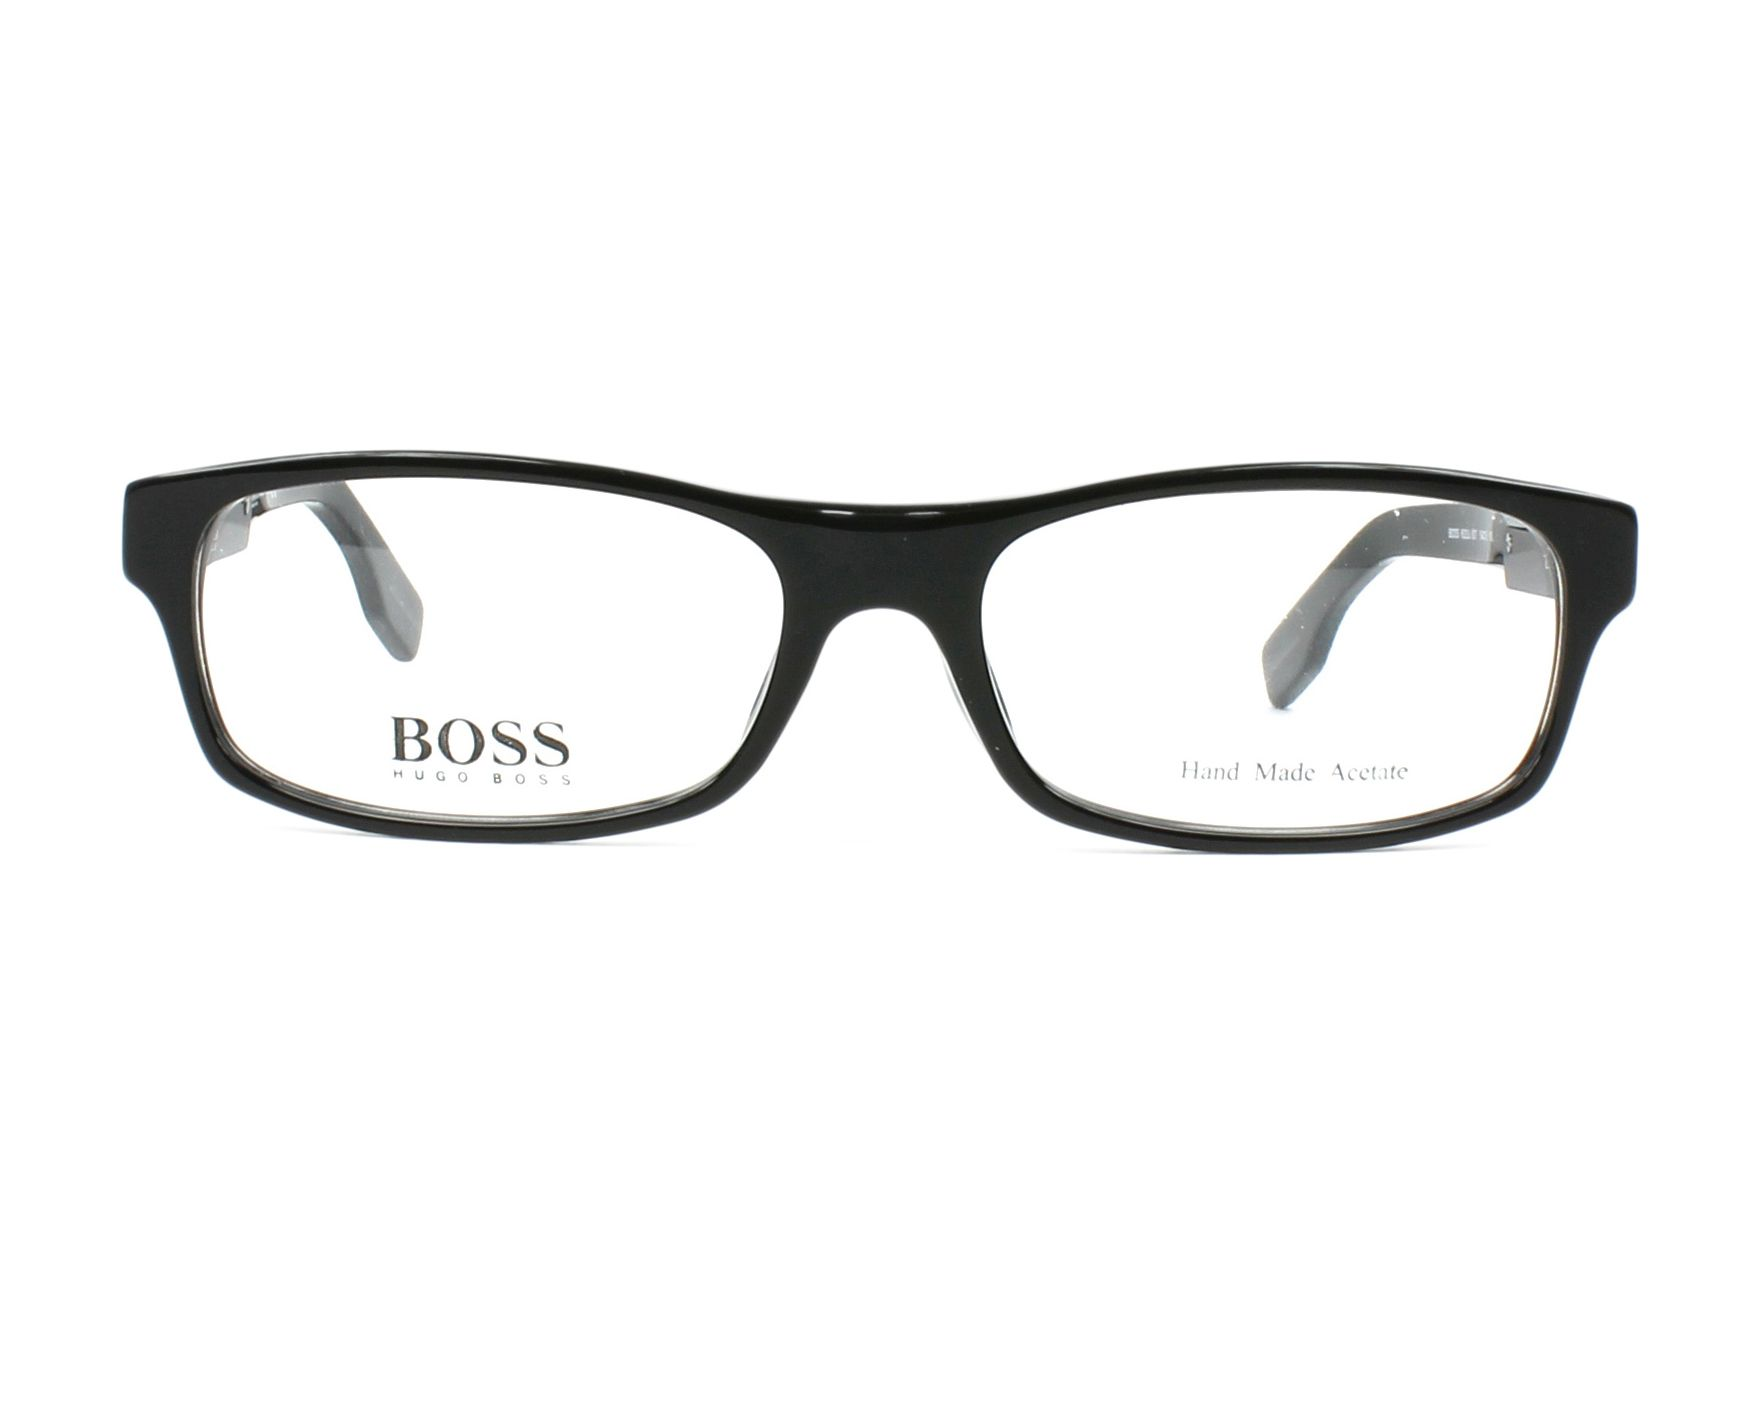 orig hugo boss brille brillengestell boss 6023 j 807 neu ebay. Black Bedroom Furniture Sets. Home Design Ideas